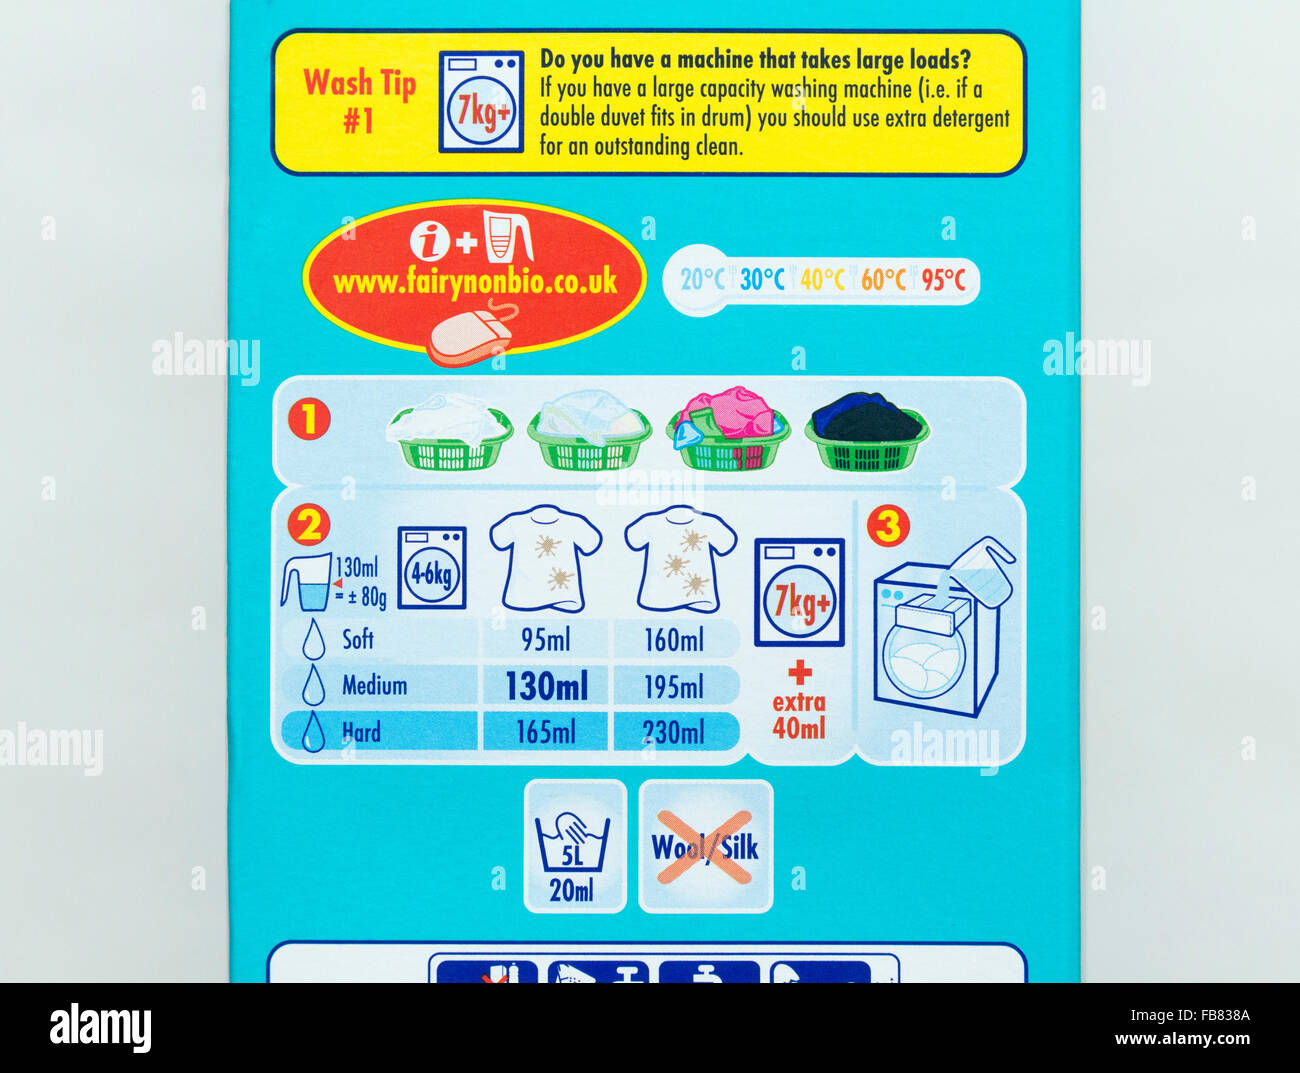 Washing Powder Instructions Stock Photo Royalty Free